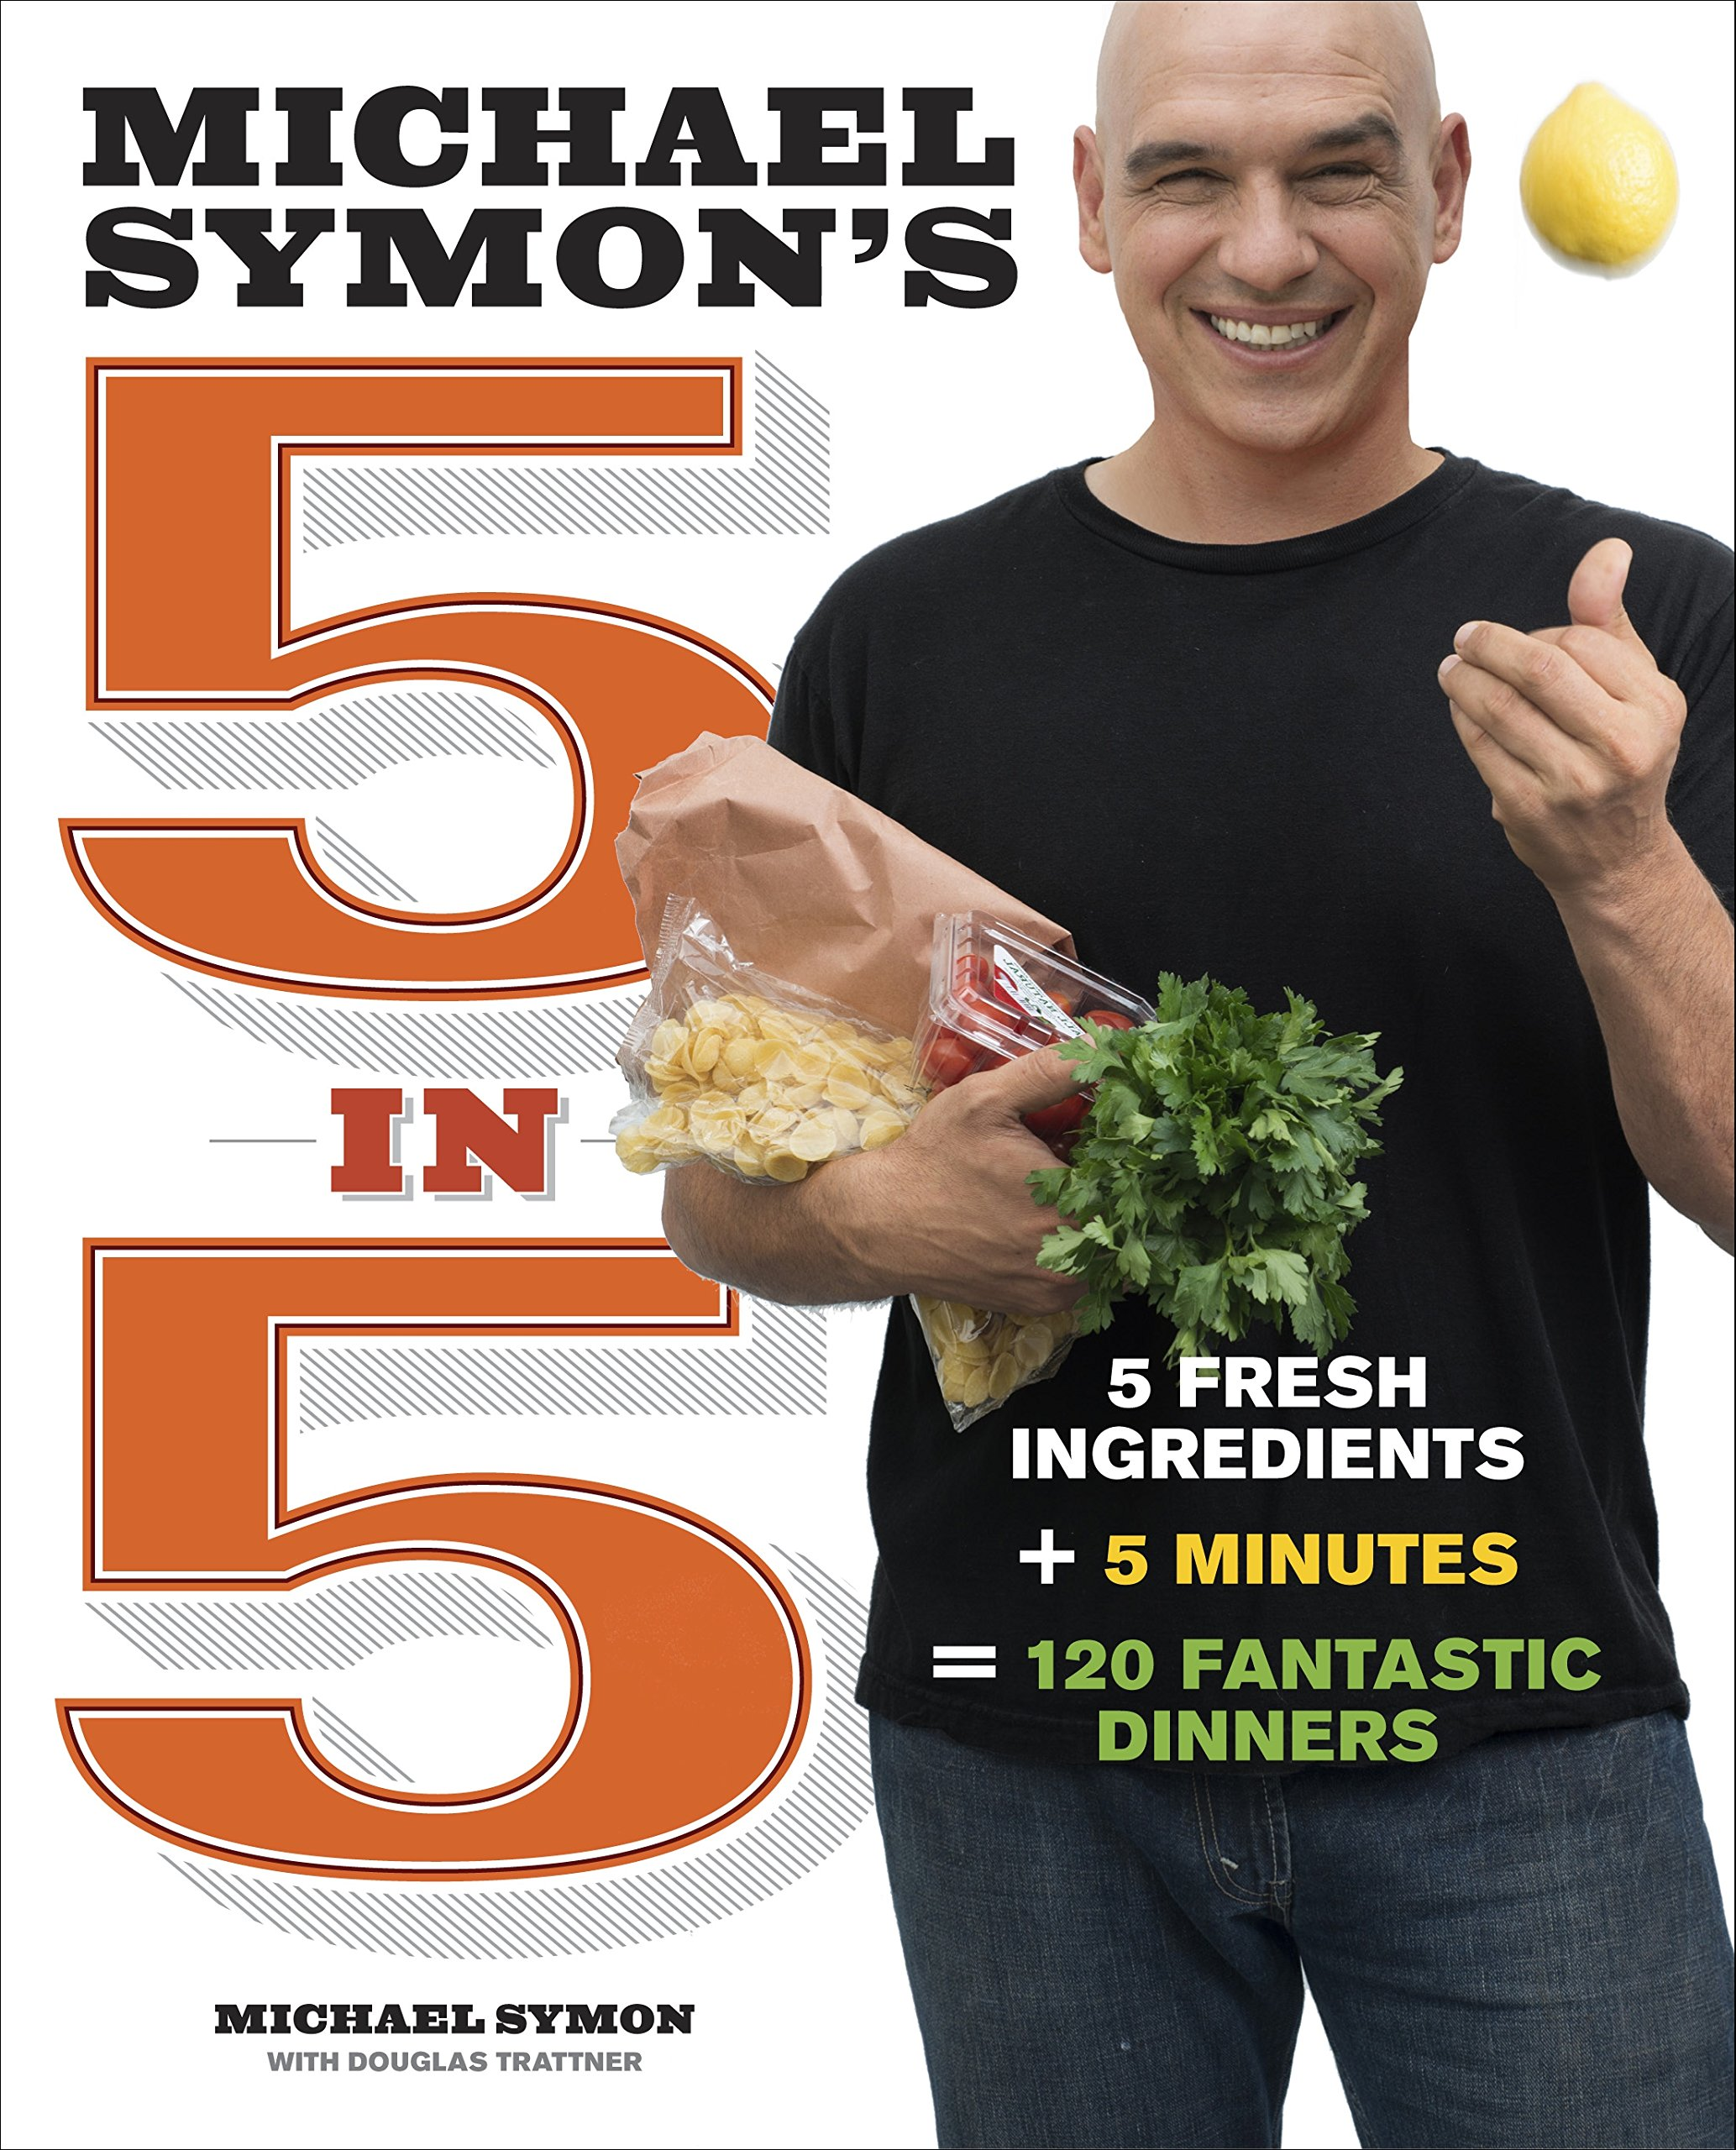 Michael Symon's 5 in 5 - by Michael Symon and Douglas Trattner5 in 5 was written on the premise of creating a great meal with five fresh ingredients and five minutes of cooking. The book is organized by cooking technique, including grilling and foil packets, and there is an entire section devoted to just ice cream (yes, you read that right).The Angel Hair with Corn, Feta and Tomato is one of my favorite recipes when I want something that doesn't create a lot of heat in a summertime kitchen. The Chicken Thighs in Tomato and Olive Sauce is another tasty dish, and it uses a cheaper cut of meat, which is nice.Another great one from him is 5 in 5 for Every Season, which focuses on seasonal eating rather than technique.